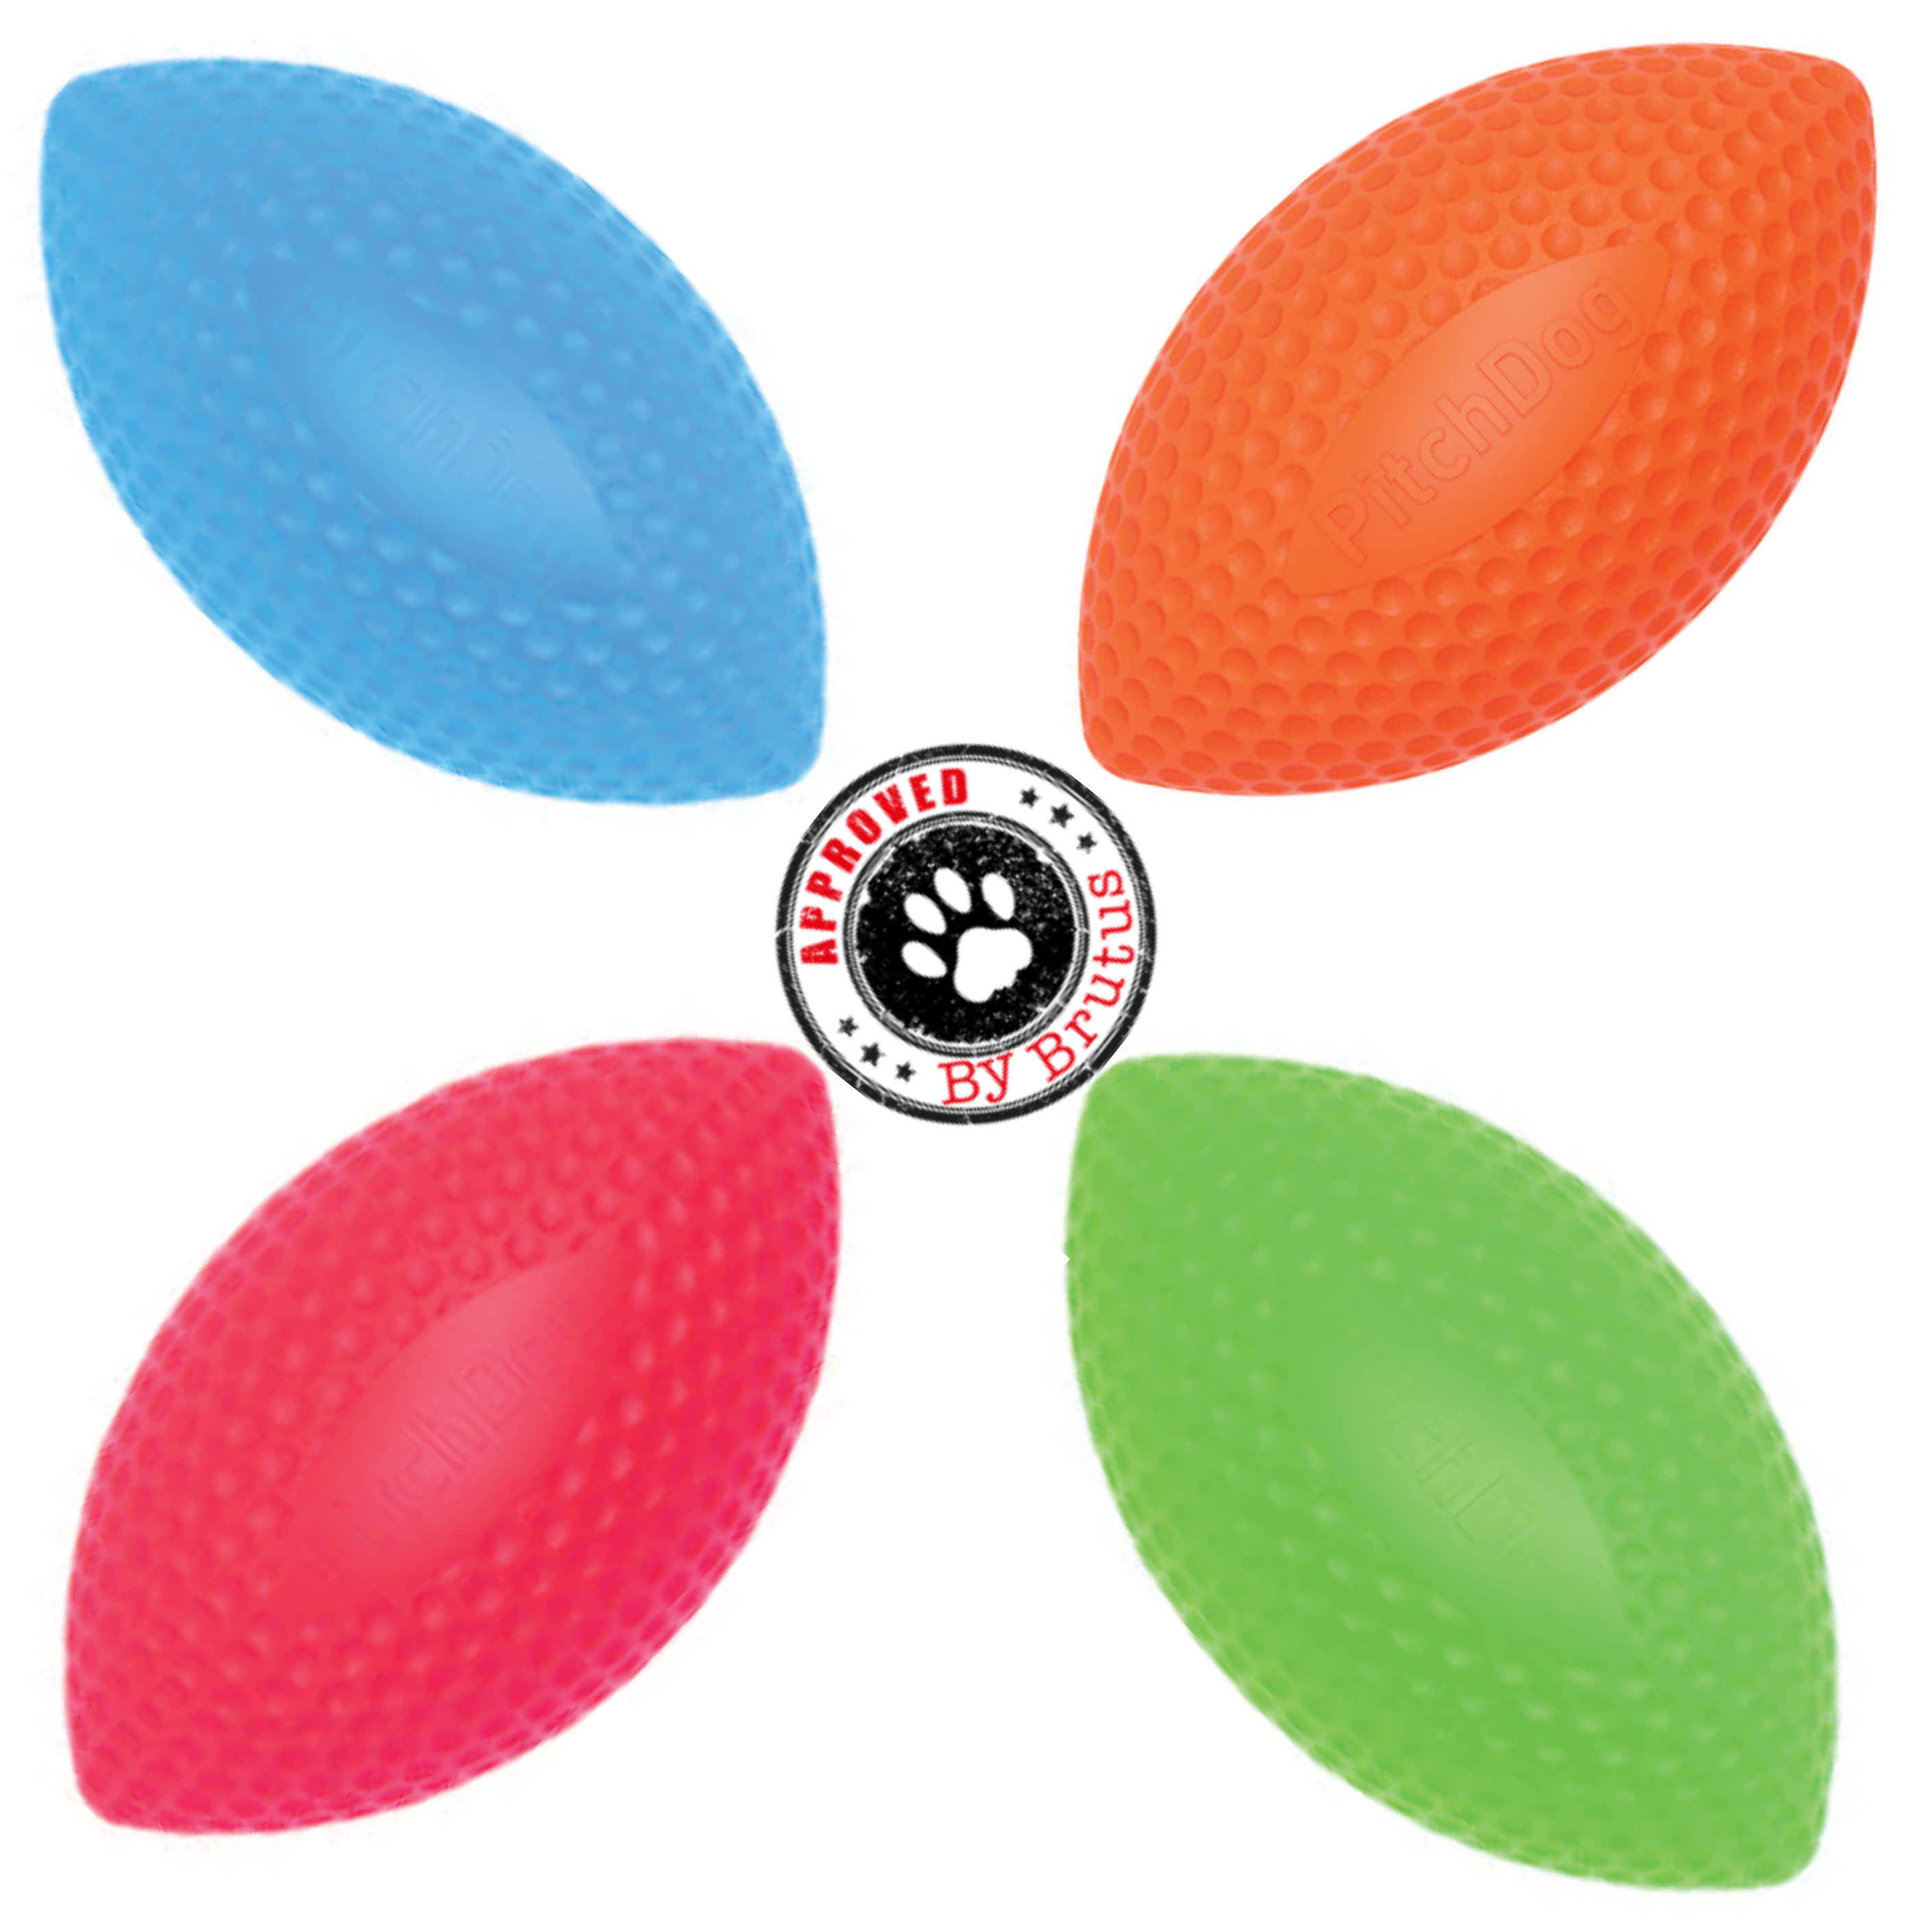 PitchDog SportBall Dog Toy by Collar Company - available in orange, pink, blue, and green.  One size.